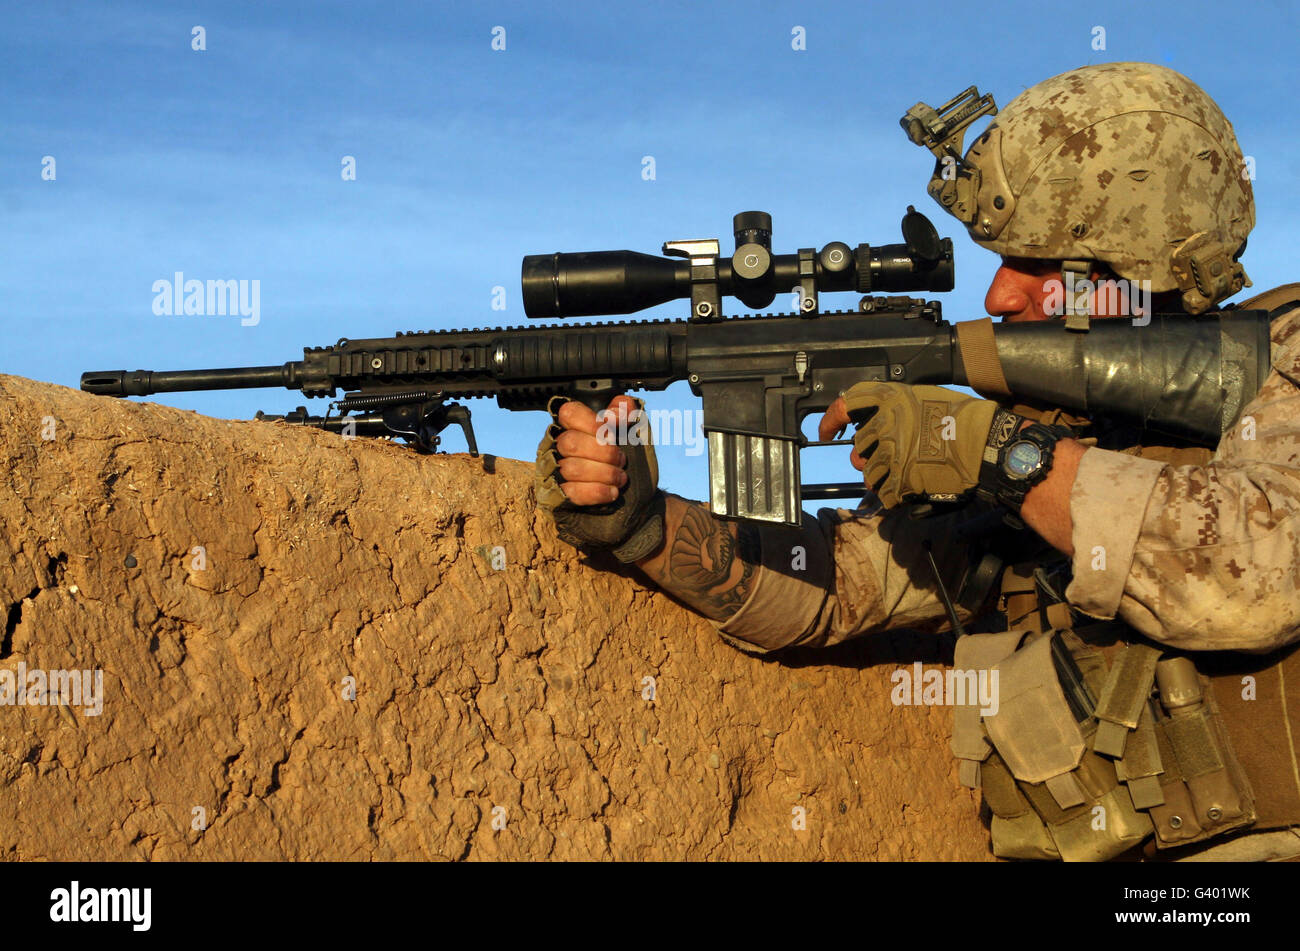 A sniper takes aim at insurgents during a firefight in Afghanistan. Stock Photo